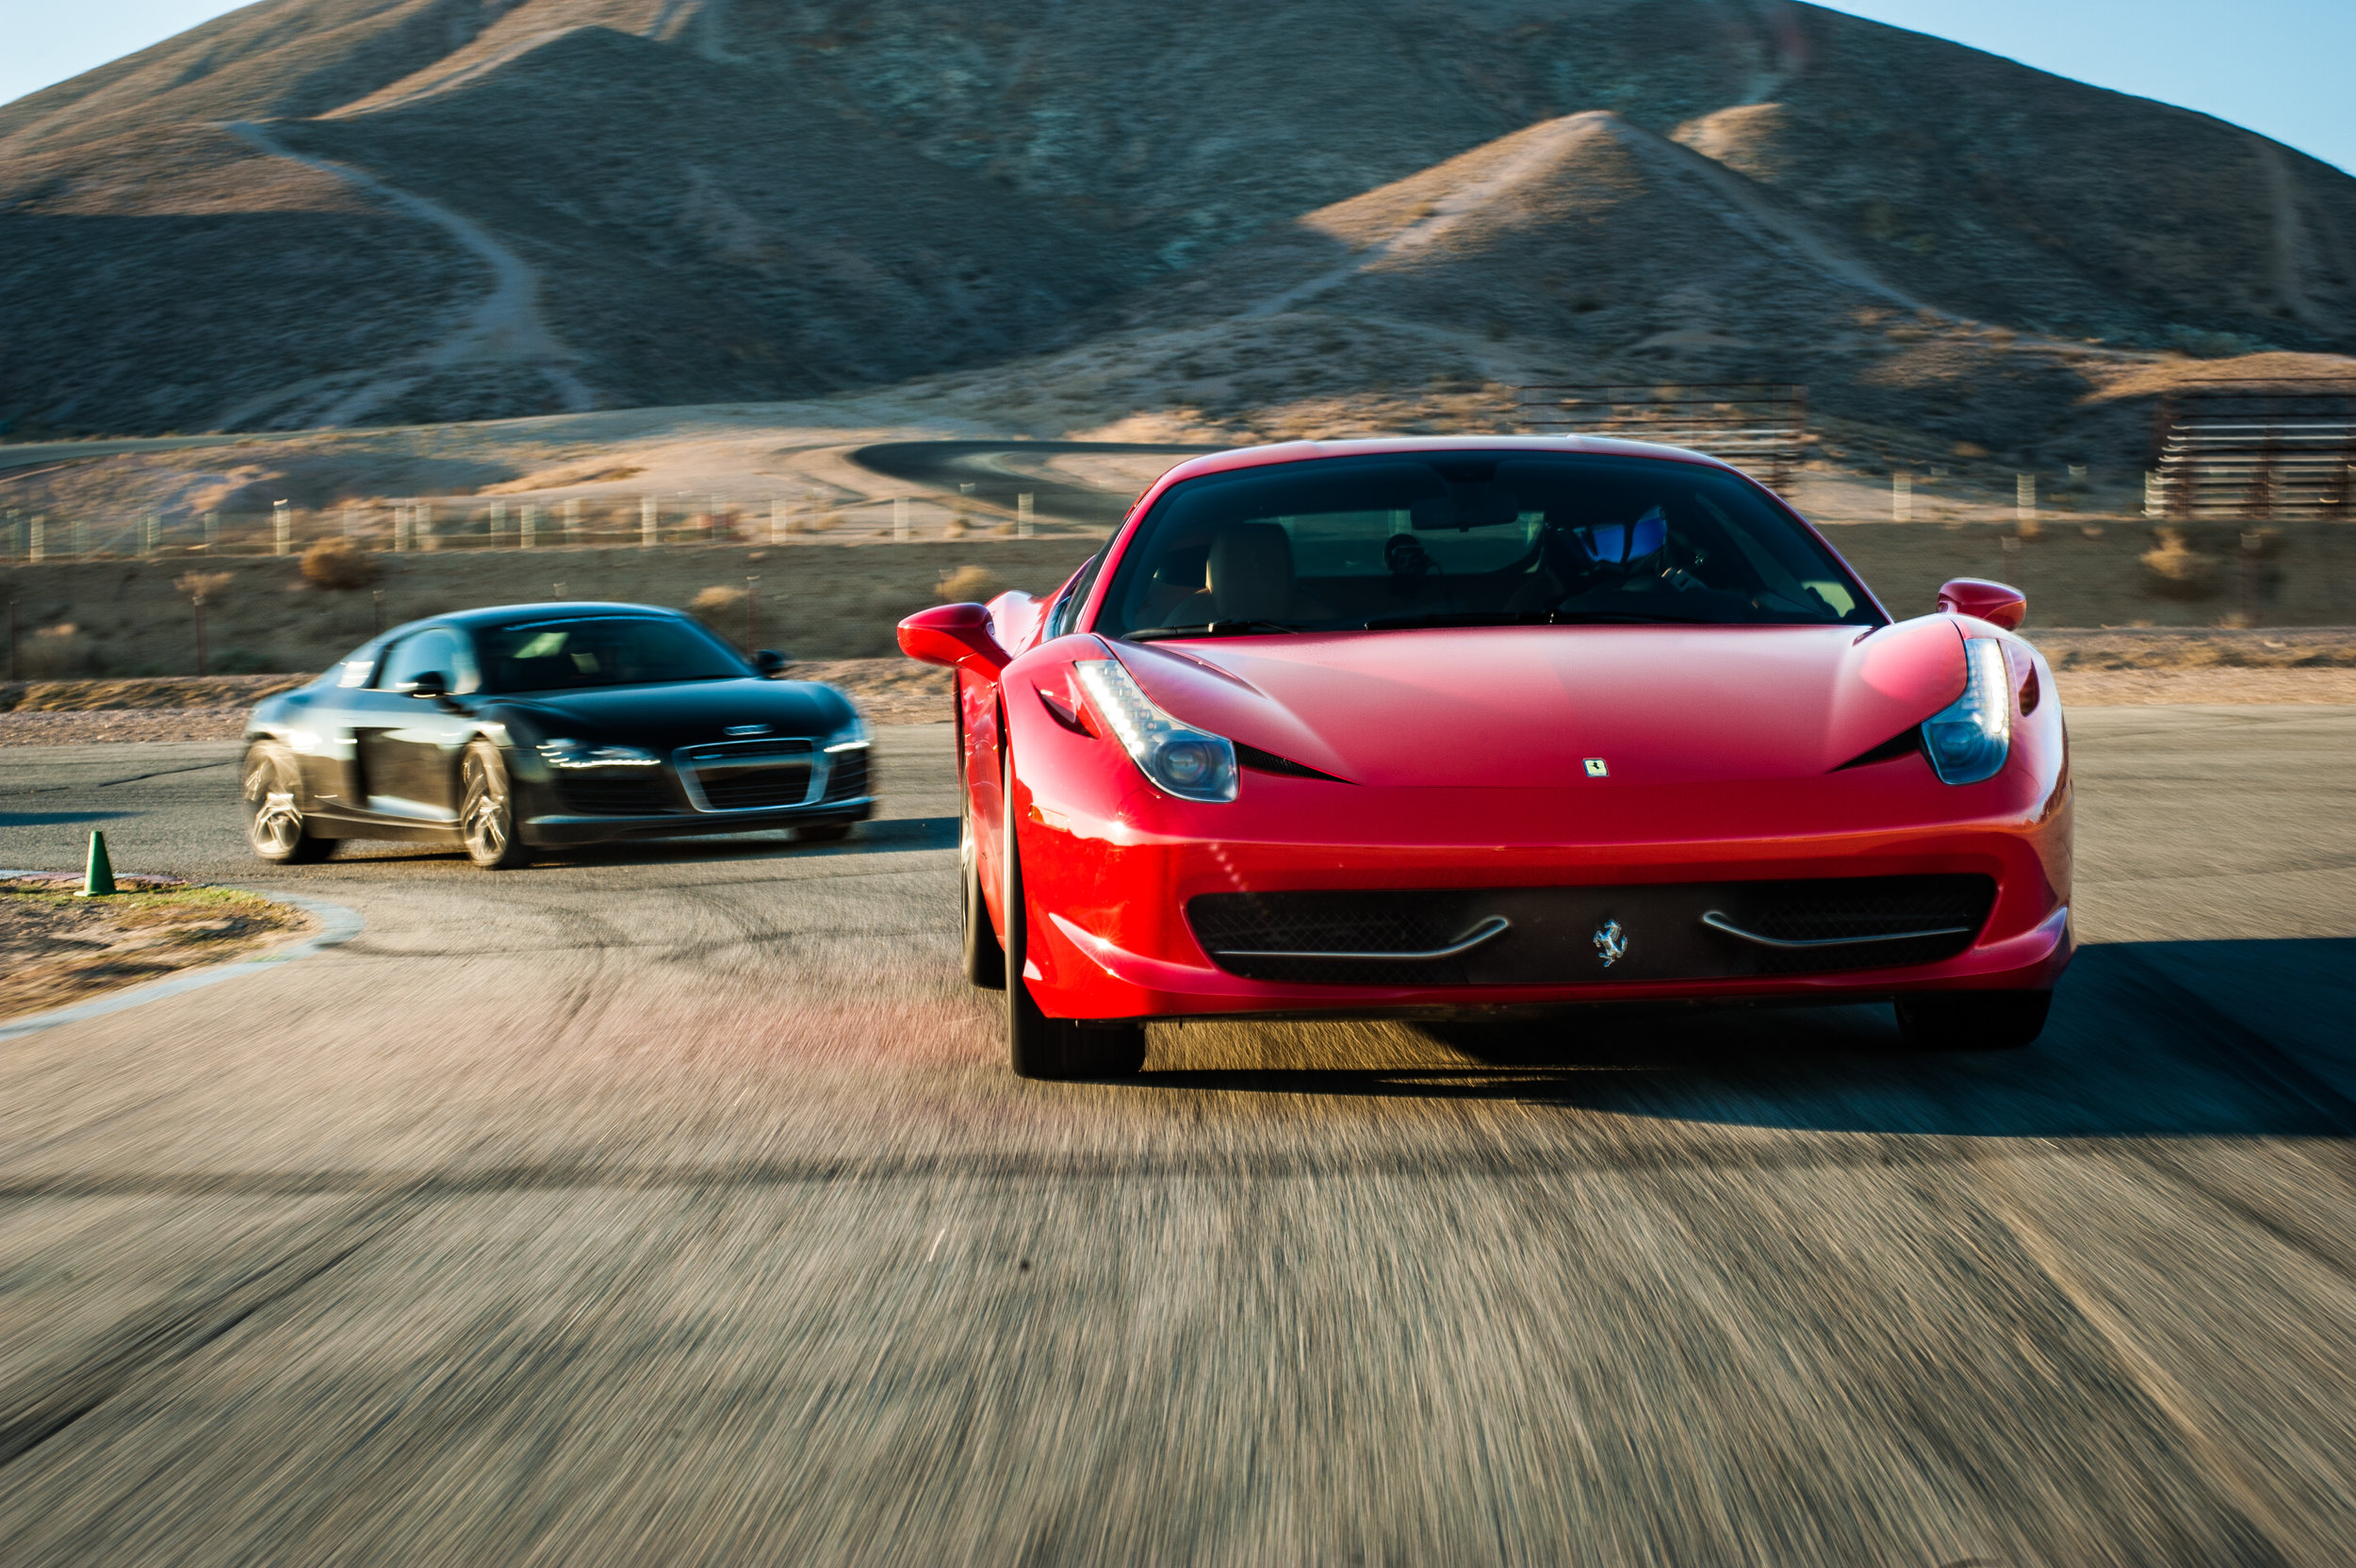 Fast and Furious - High-Speed Driving,Supercars, Adrenaline Rush, Joliet